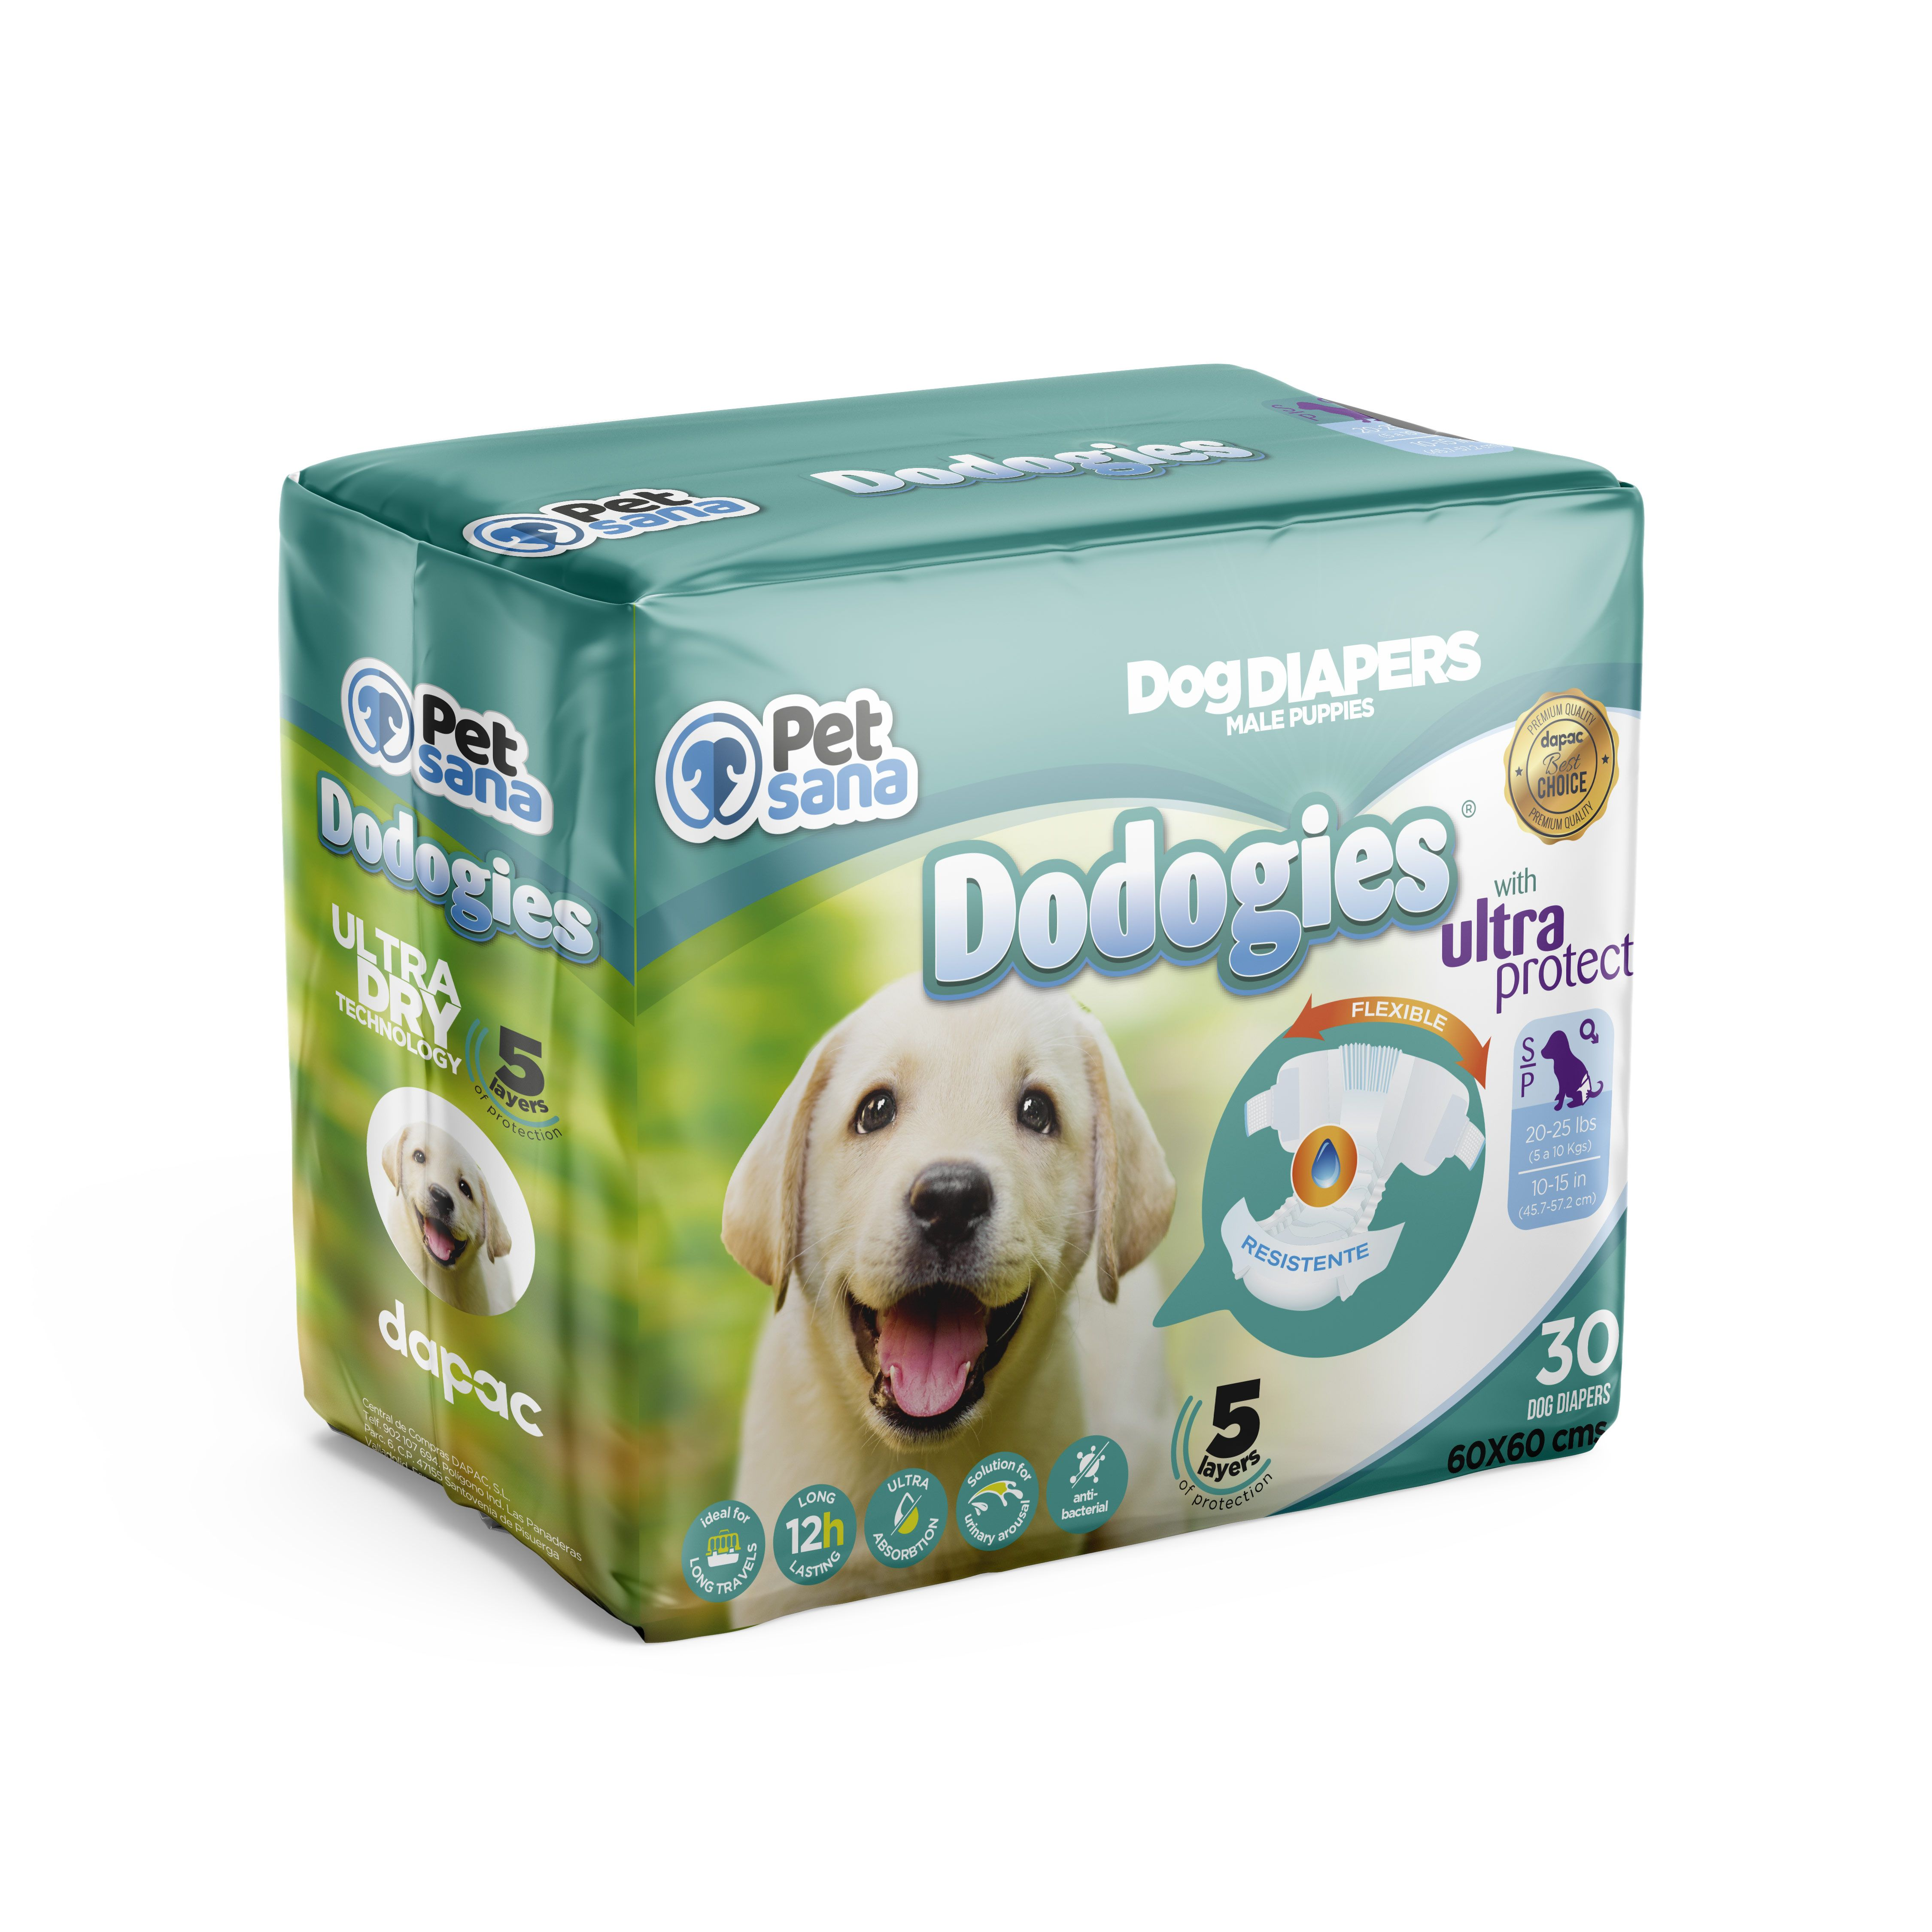 Diseño de Empaque Packaging Design pañales diapers design firm spain